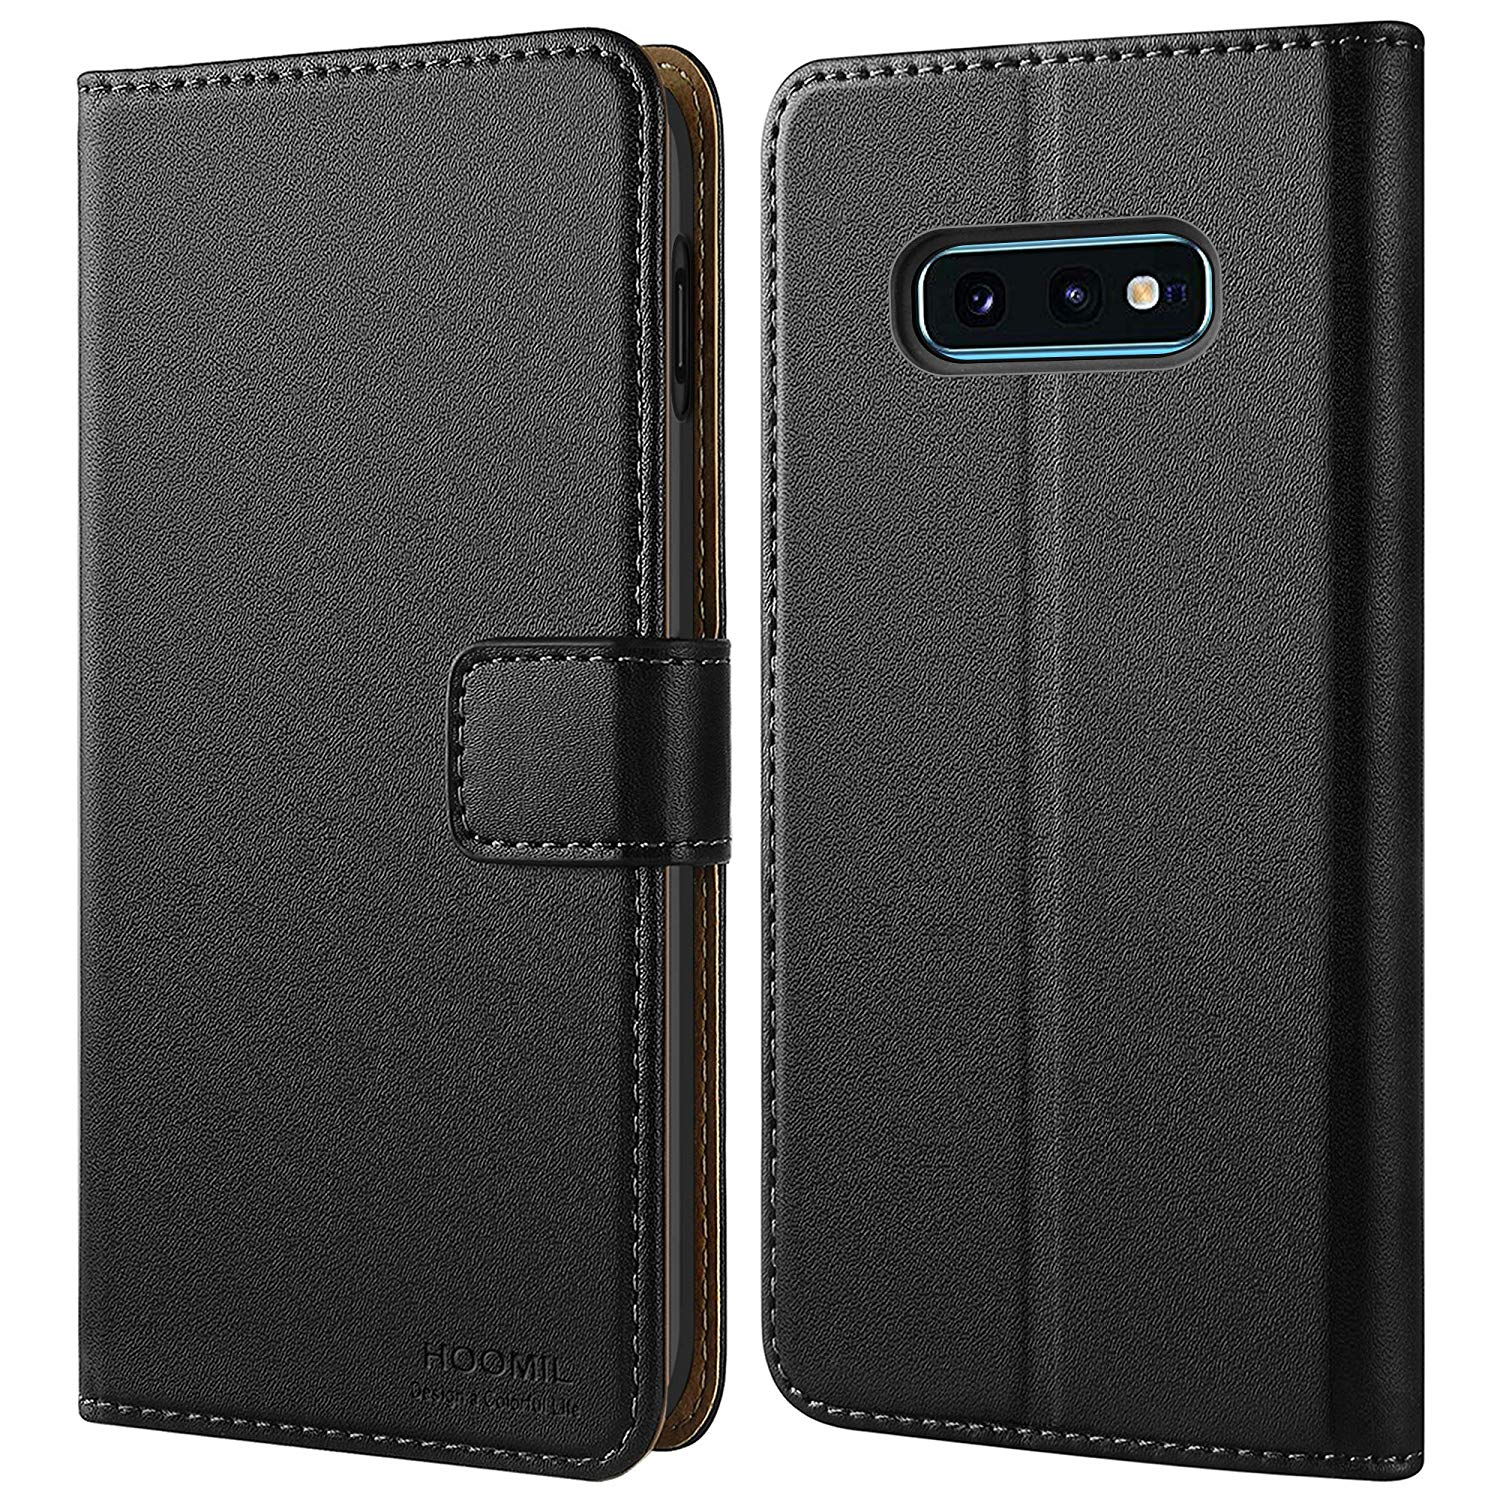 Leather flip case for Galaxy S10E by HOOMIL